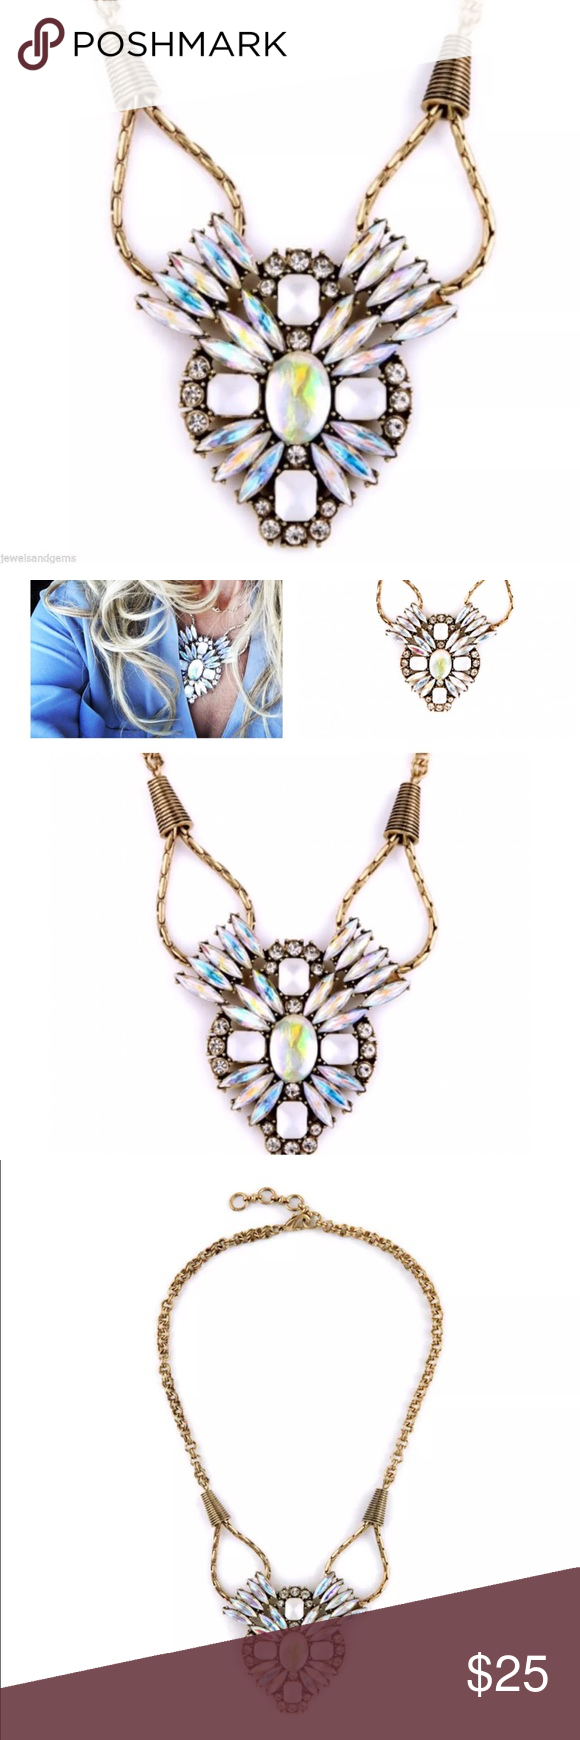 Statement Necklace Teardrop Rainbow Colorful Collar Necklace--Show Stopper Jewelry Necklaces